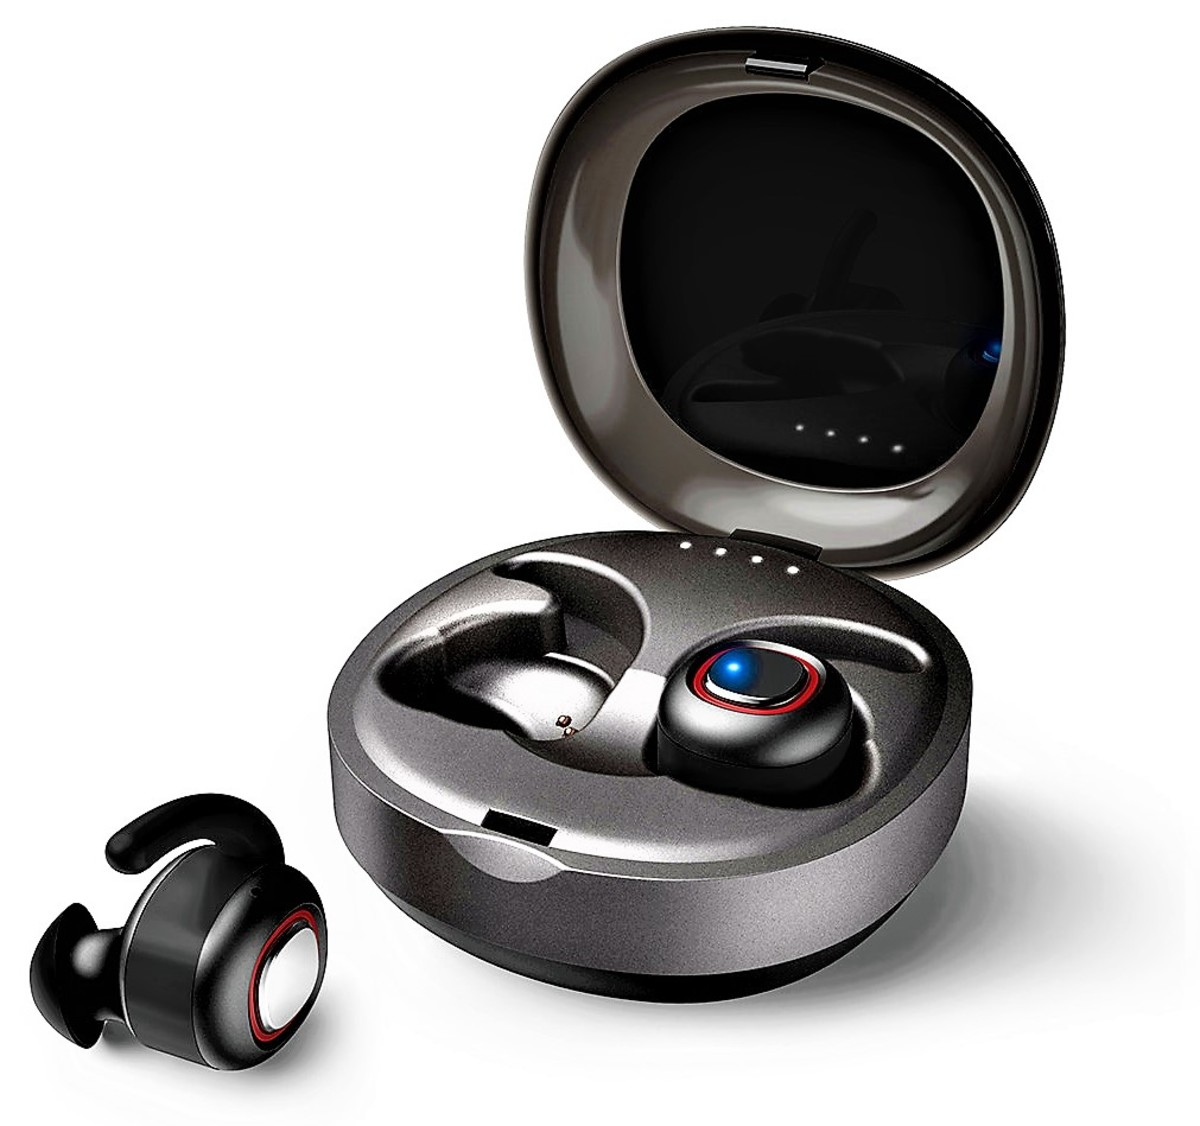 Dodocool True Wireless Stereo Earbuds